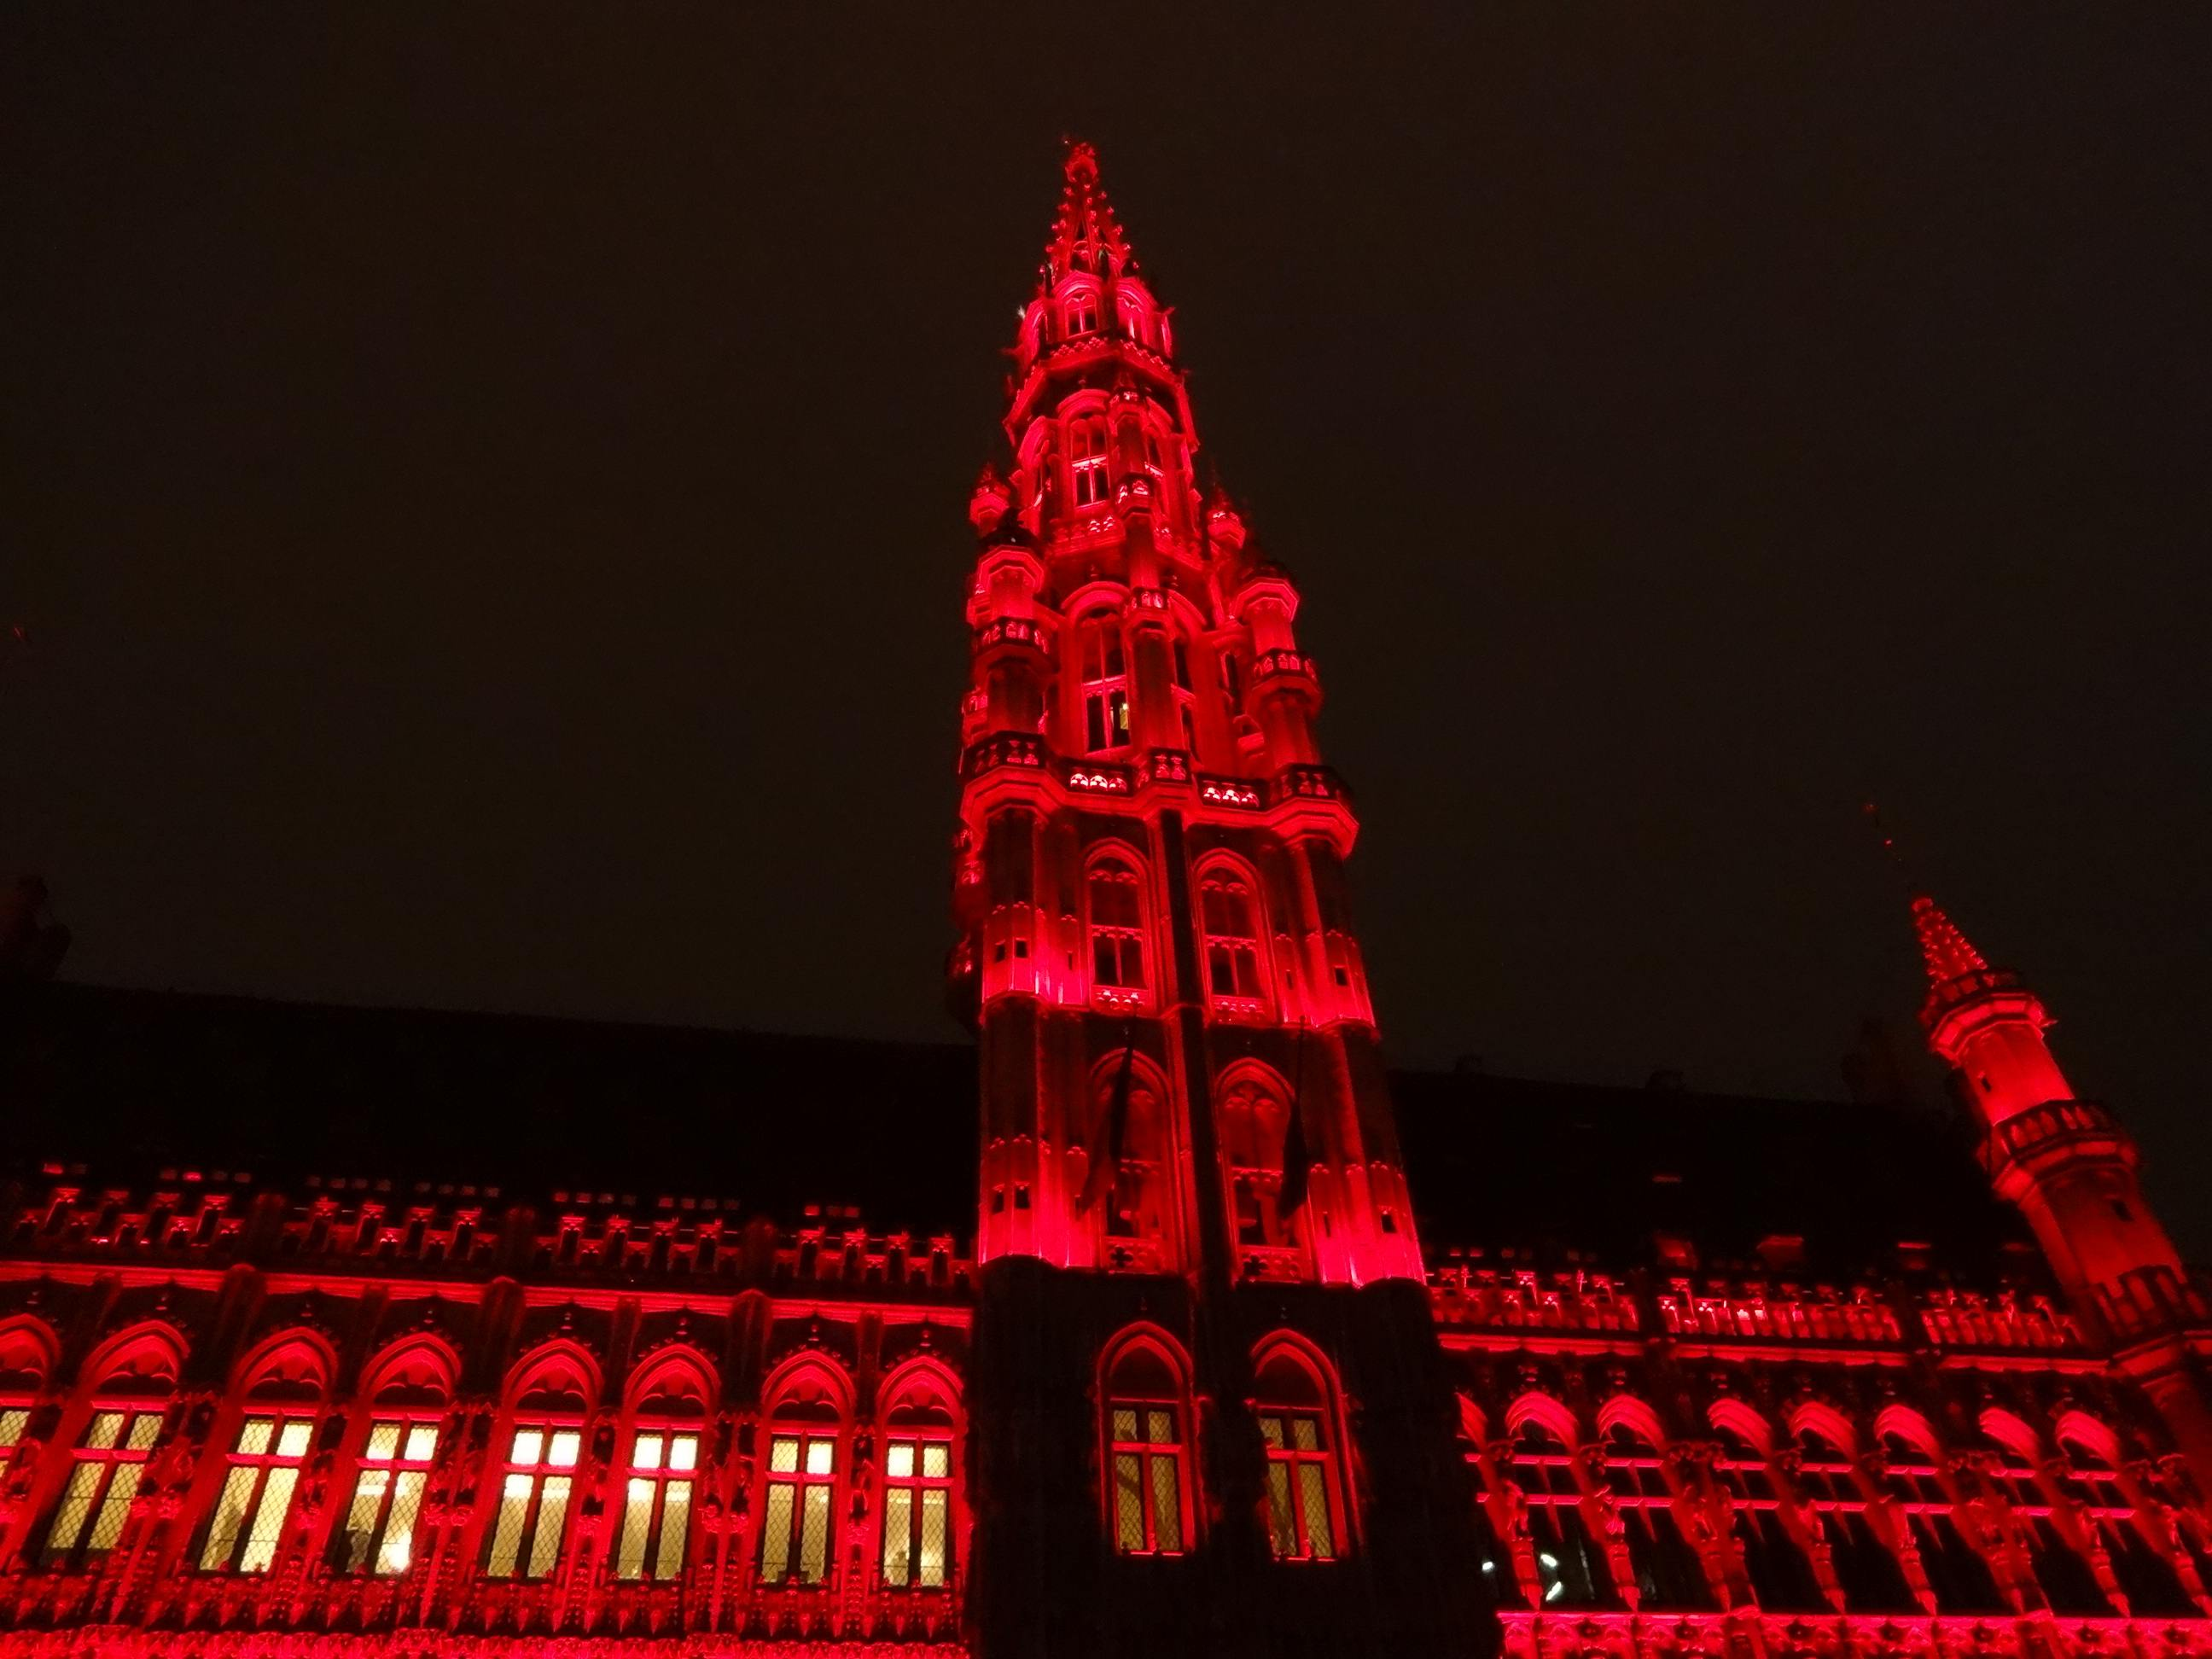 http://www.theladytravels.com/wp-content/uploads/Brussels-Christmas-2014-Grand-Place-light-show-red.jpg